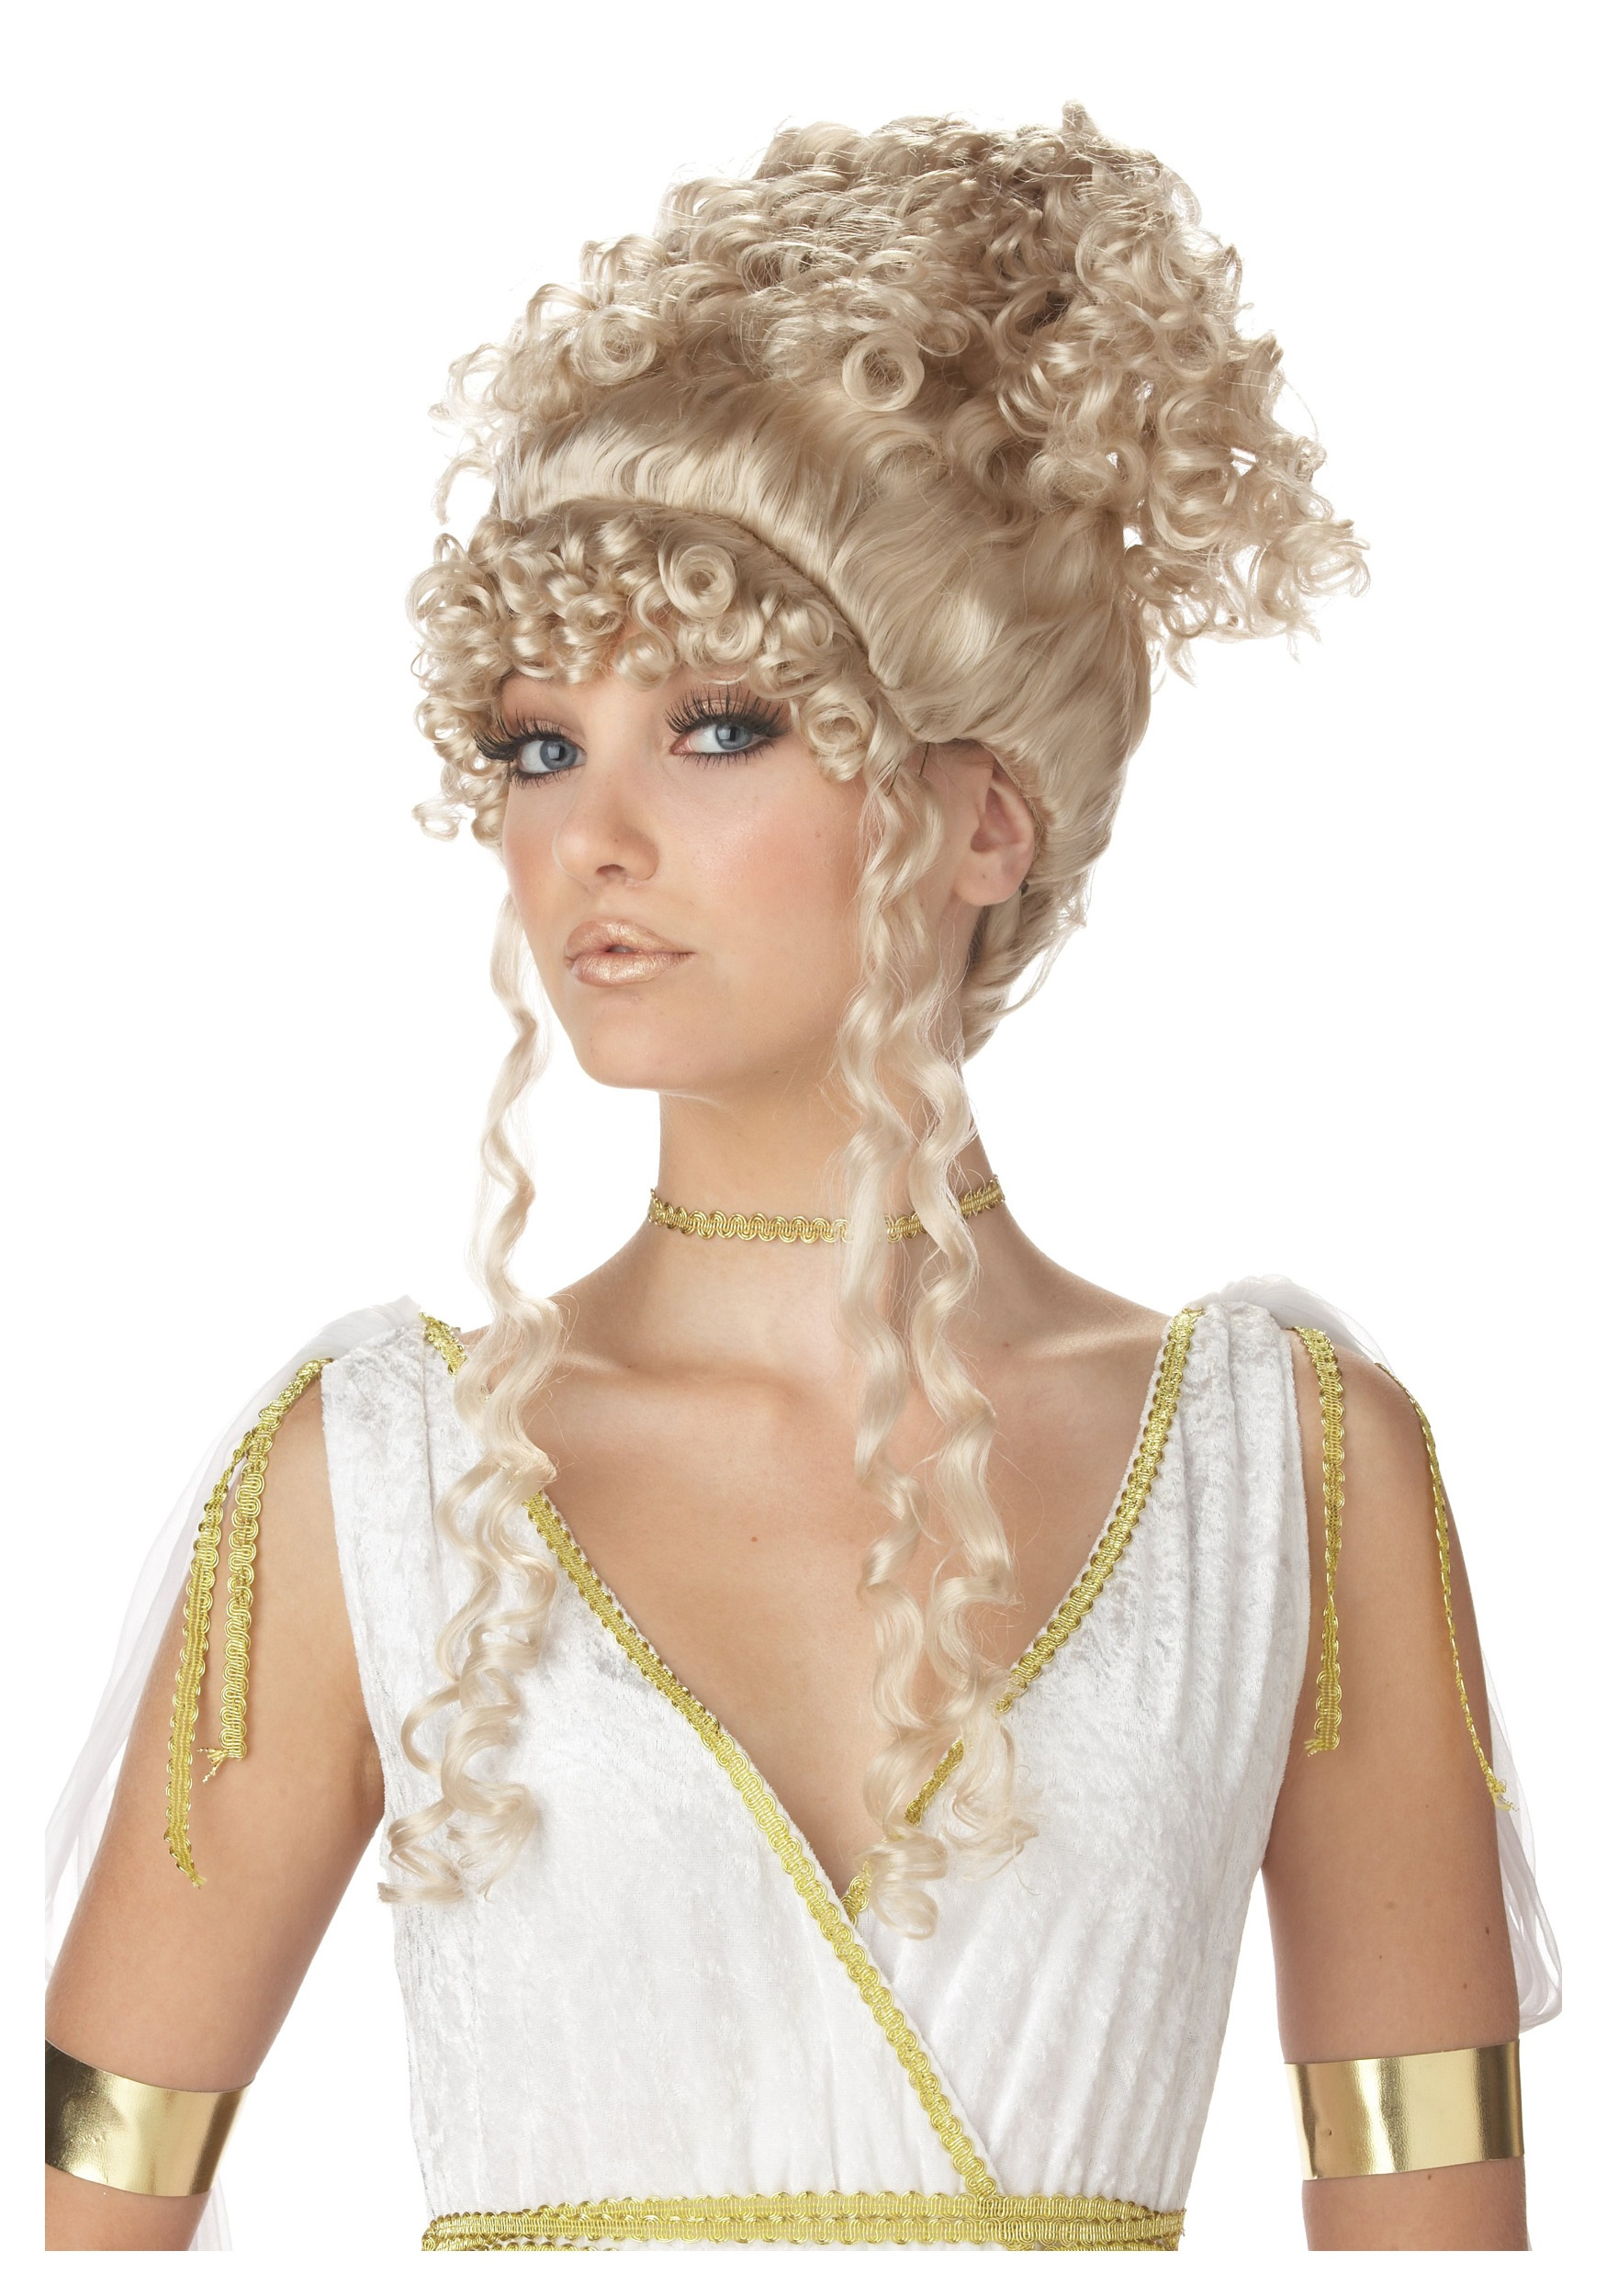 Curly Hair Costume Ideas : Goddess costume wig roman accessories